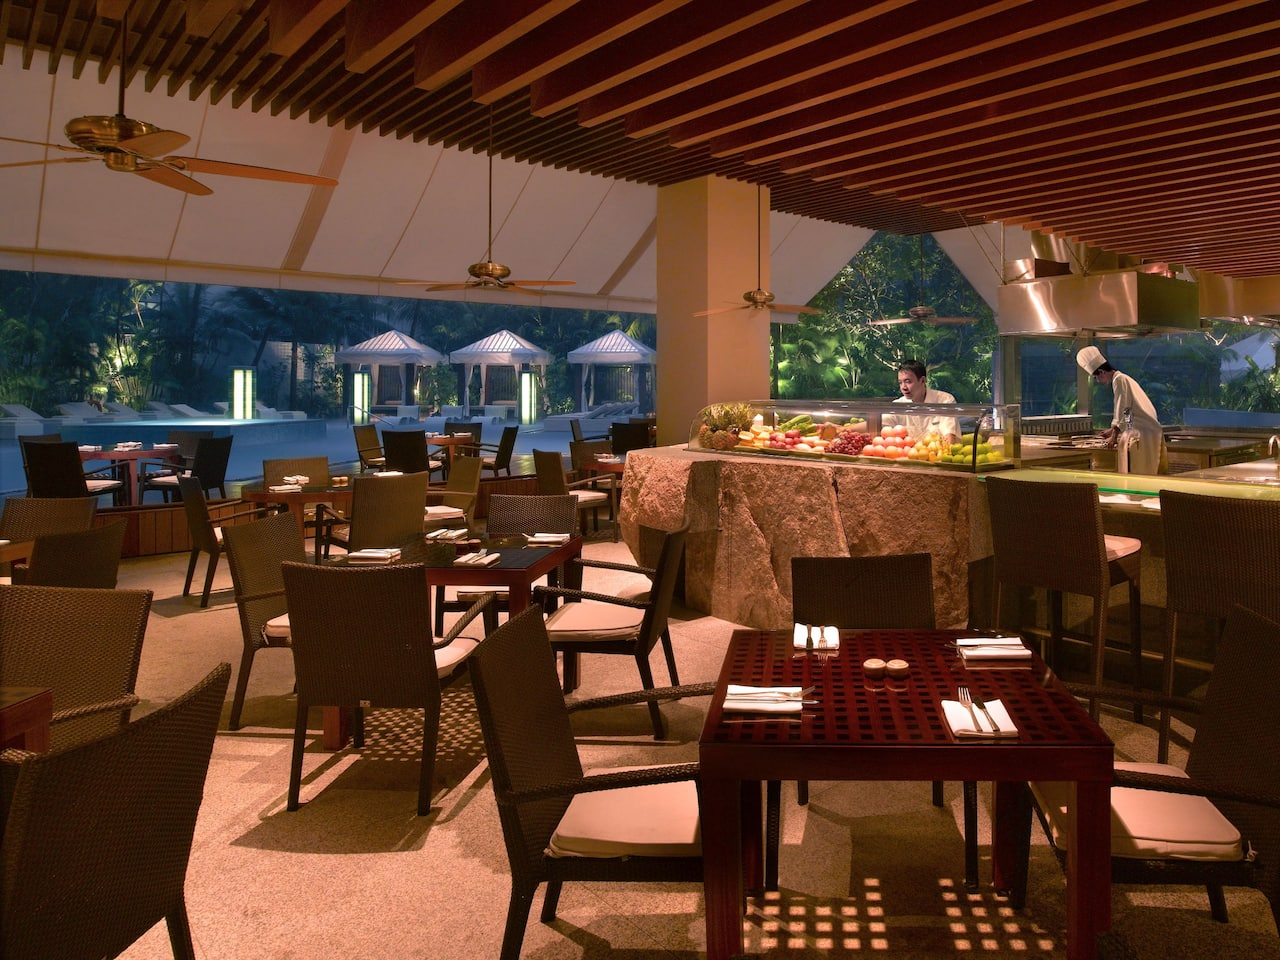 Oasis Restaurant The Grand Hyatt, Singapore best places in Orchard for a BBQ dinner